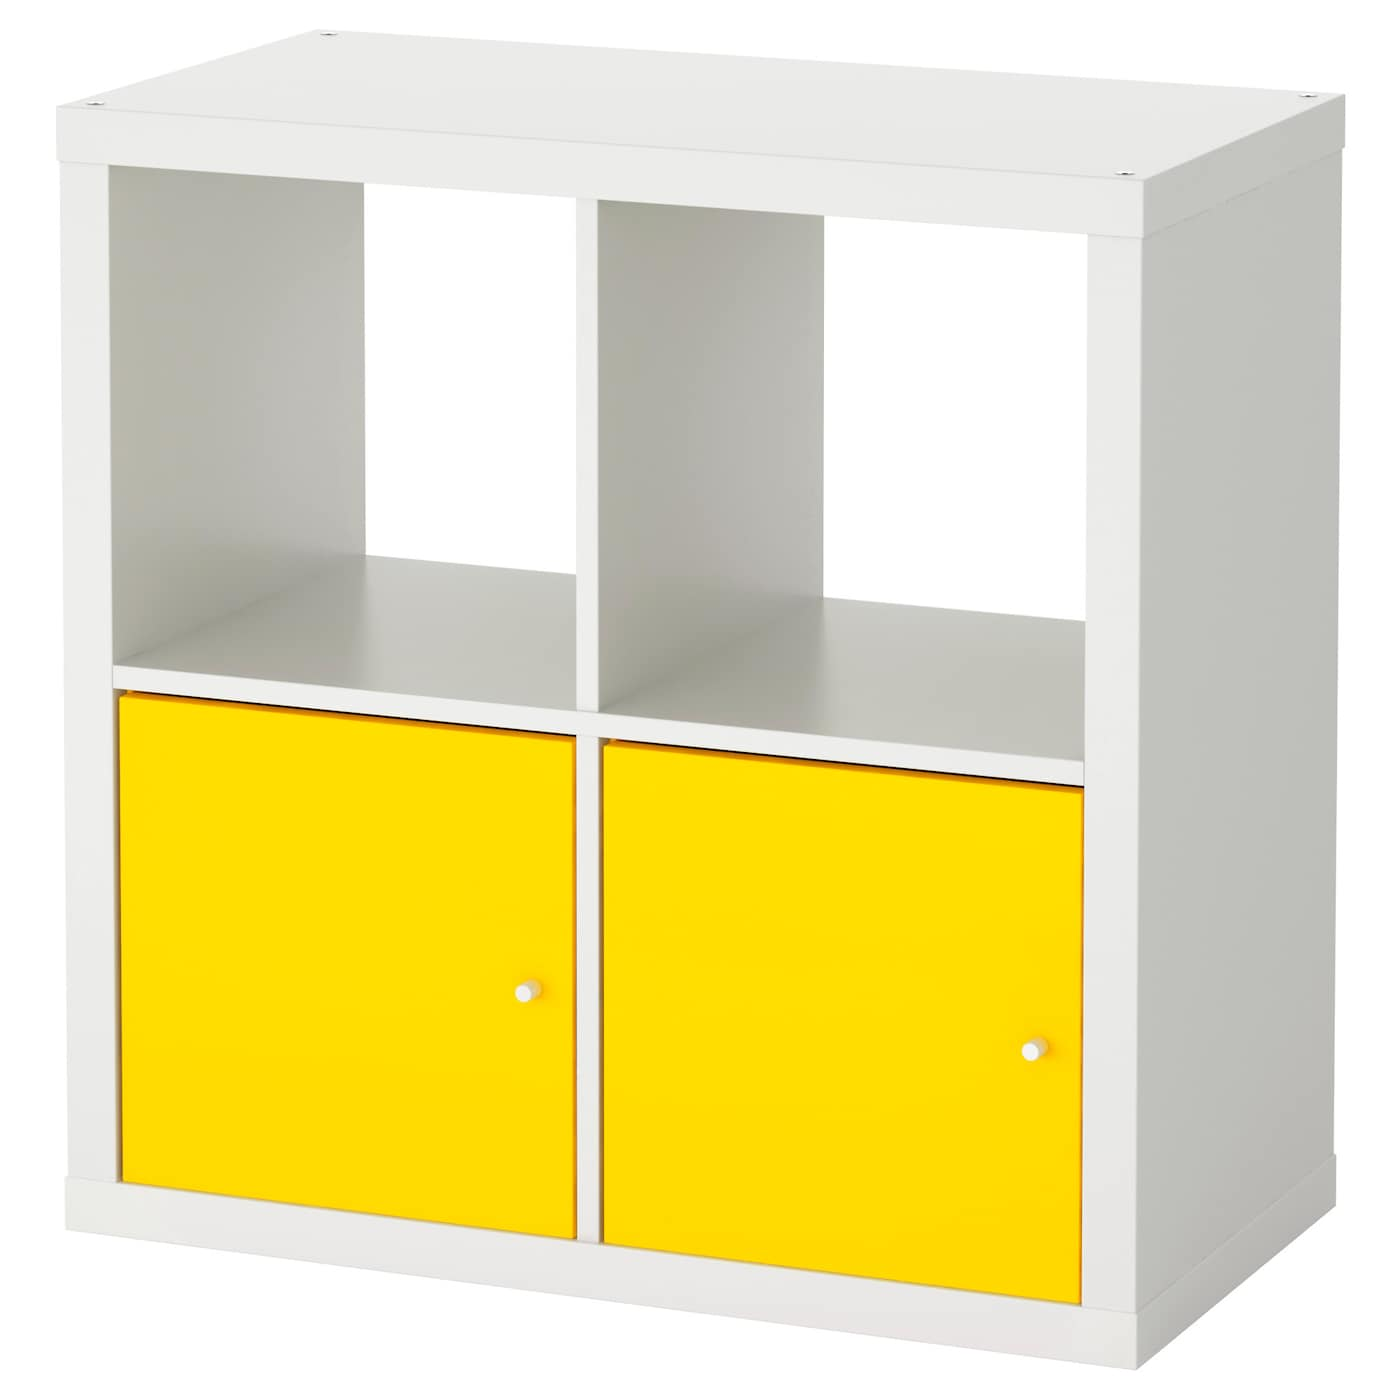 kallax shelving unit with doors white yellow 77x77 cm ikea. Black Bedroom Furniture Sets. Home Design Ideas